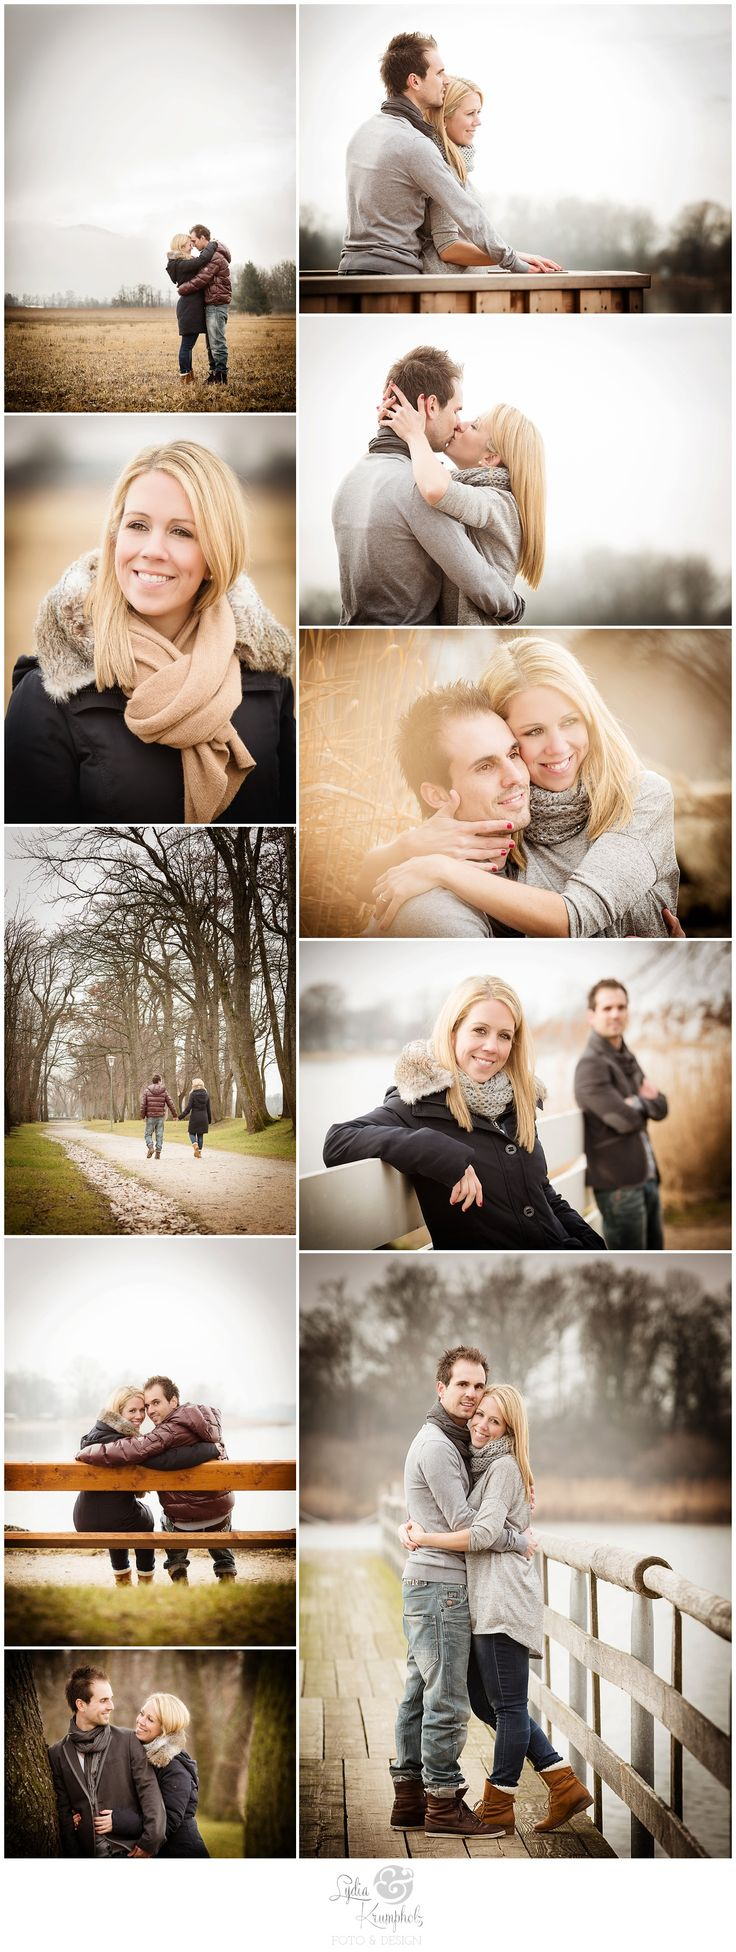 Engagement Fotoshooting im Winter